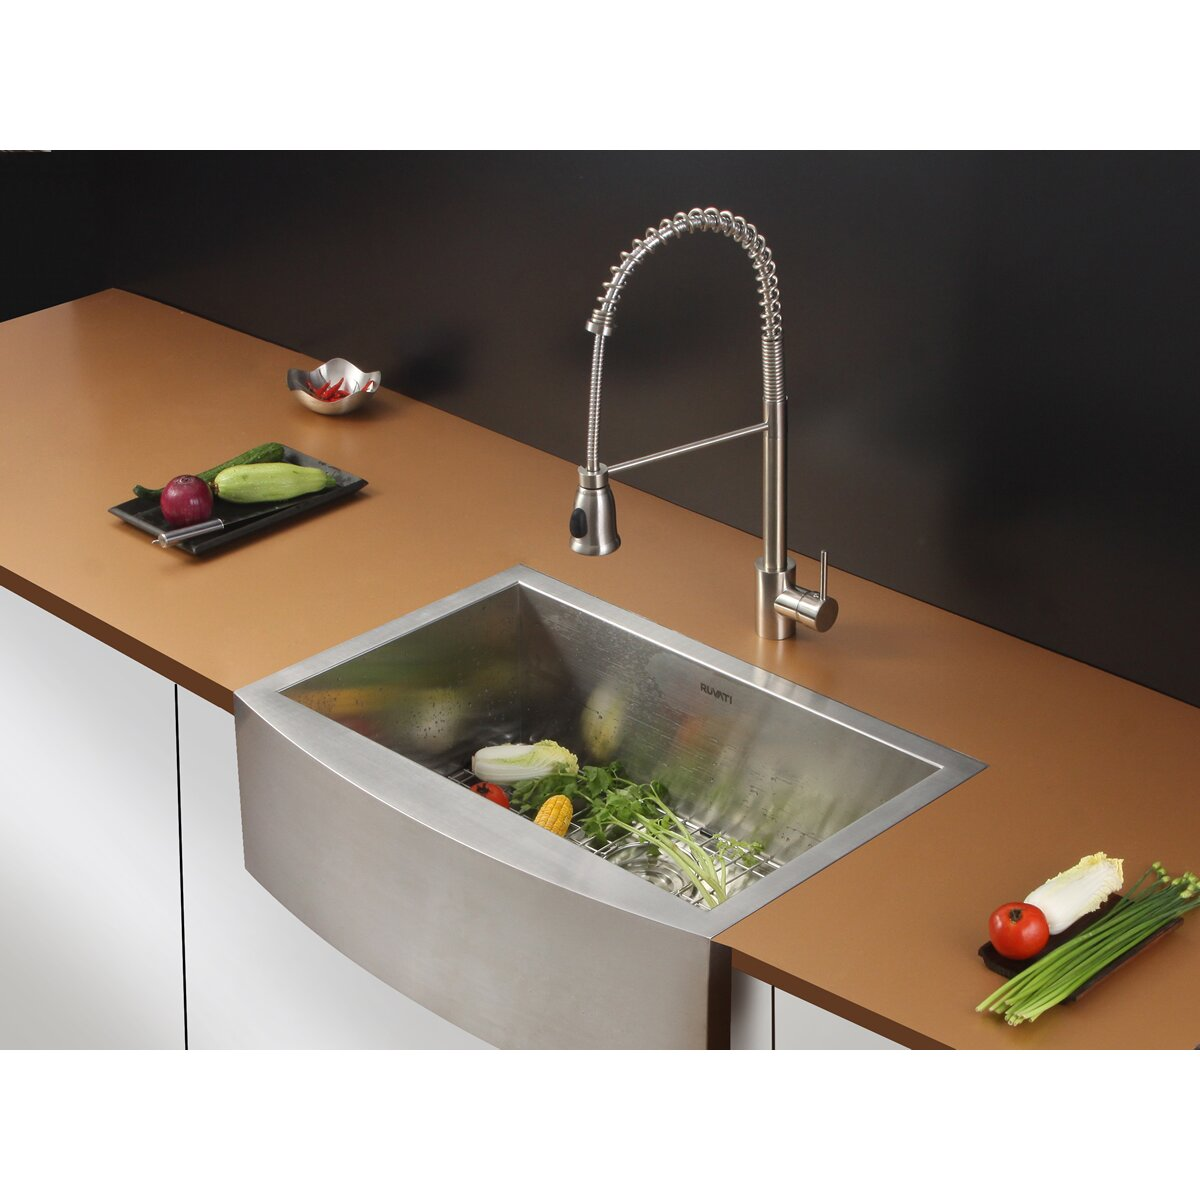 30 Kitchen Sink : Ruvati 30